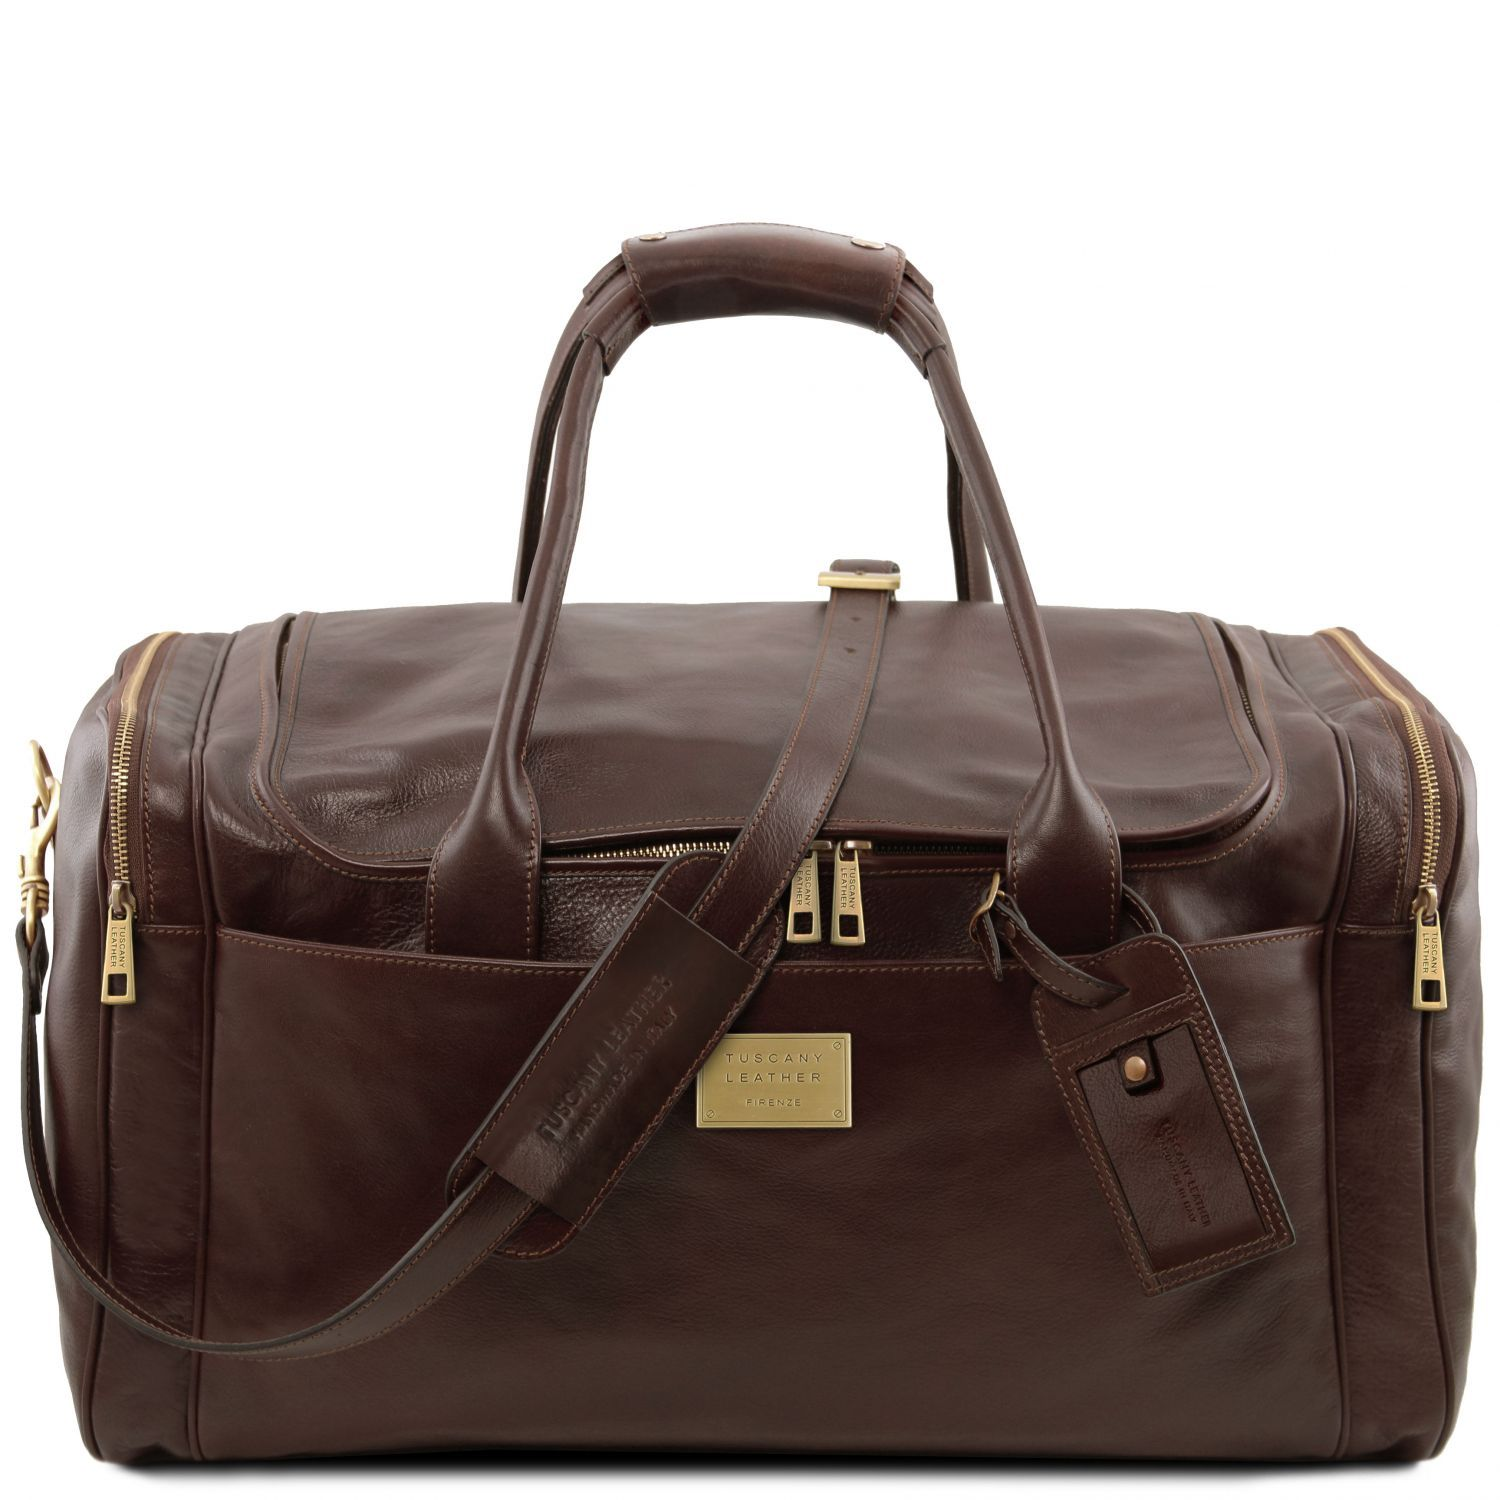 Tl Voyager Travel Leather Bag With Side Pockets Large Size